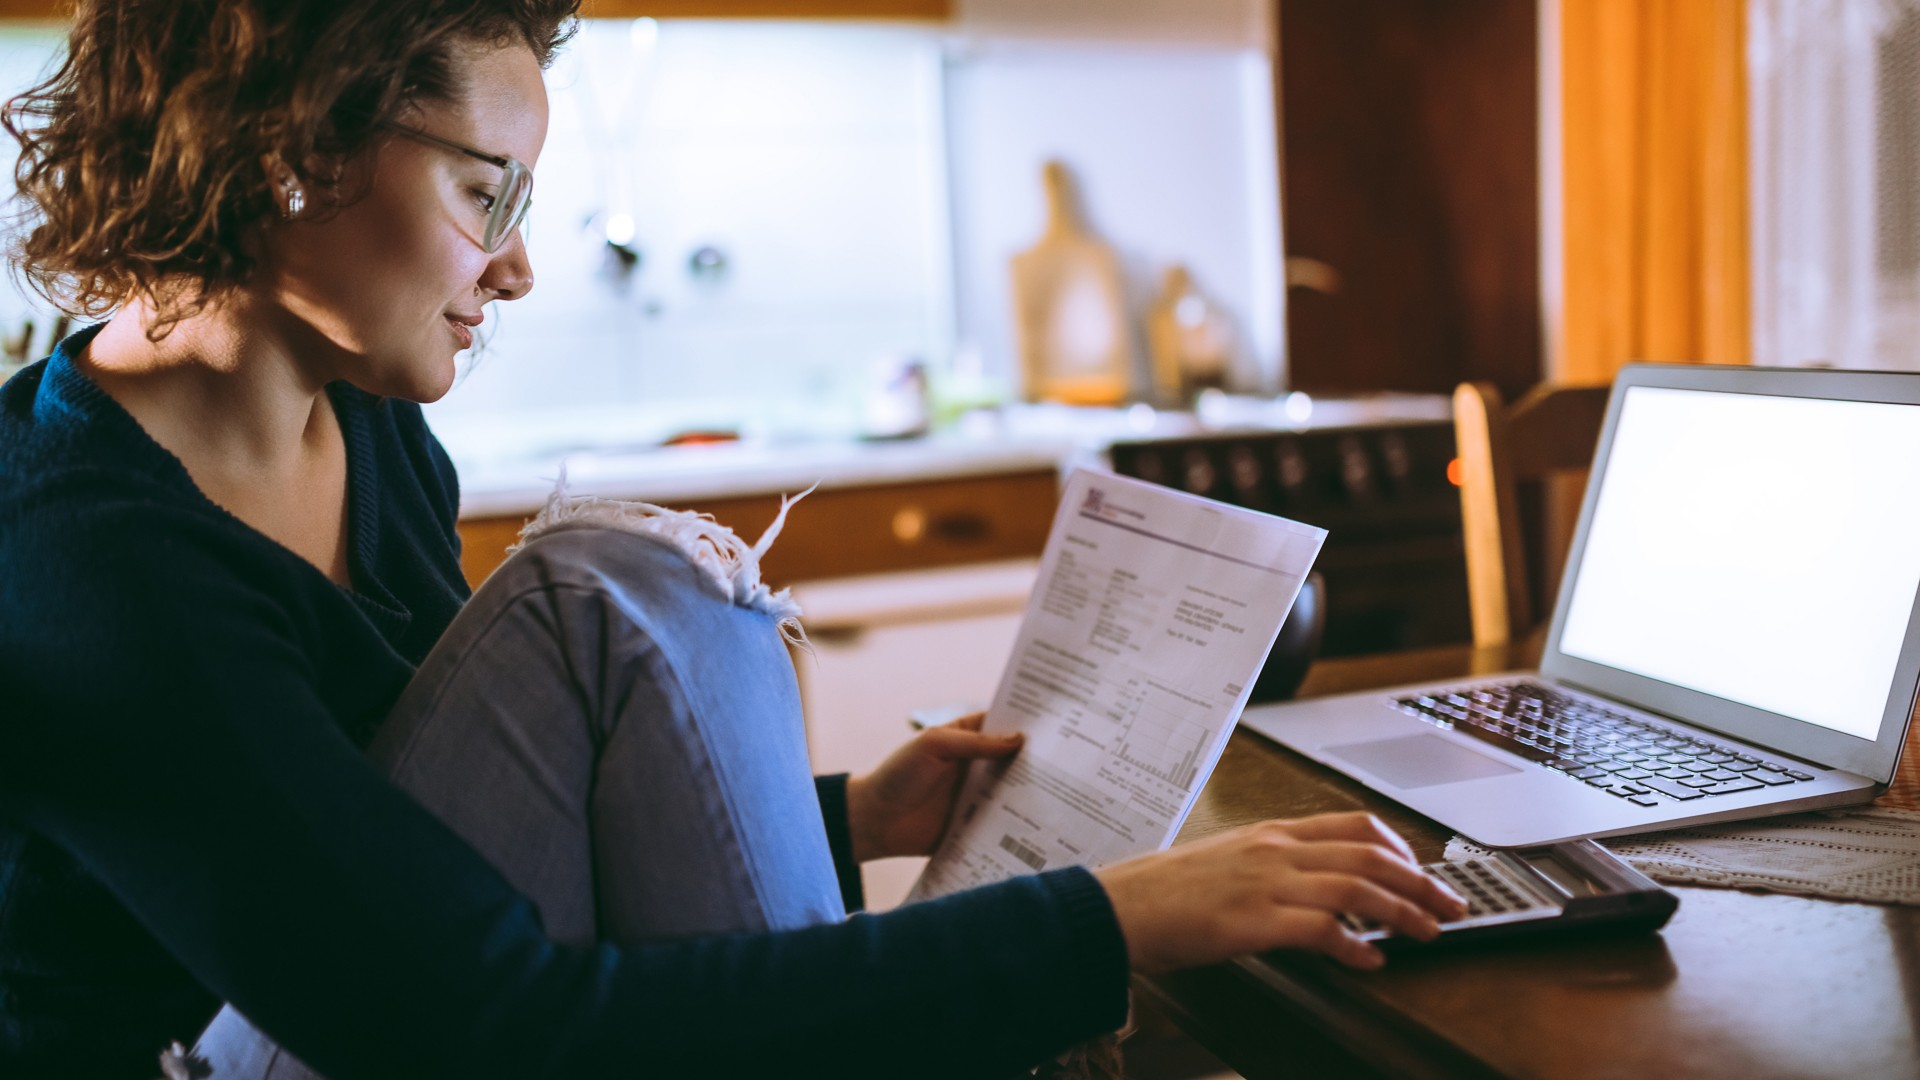 Woman going through bills at home.